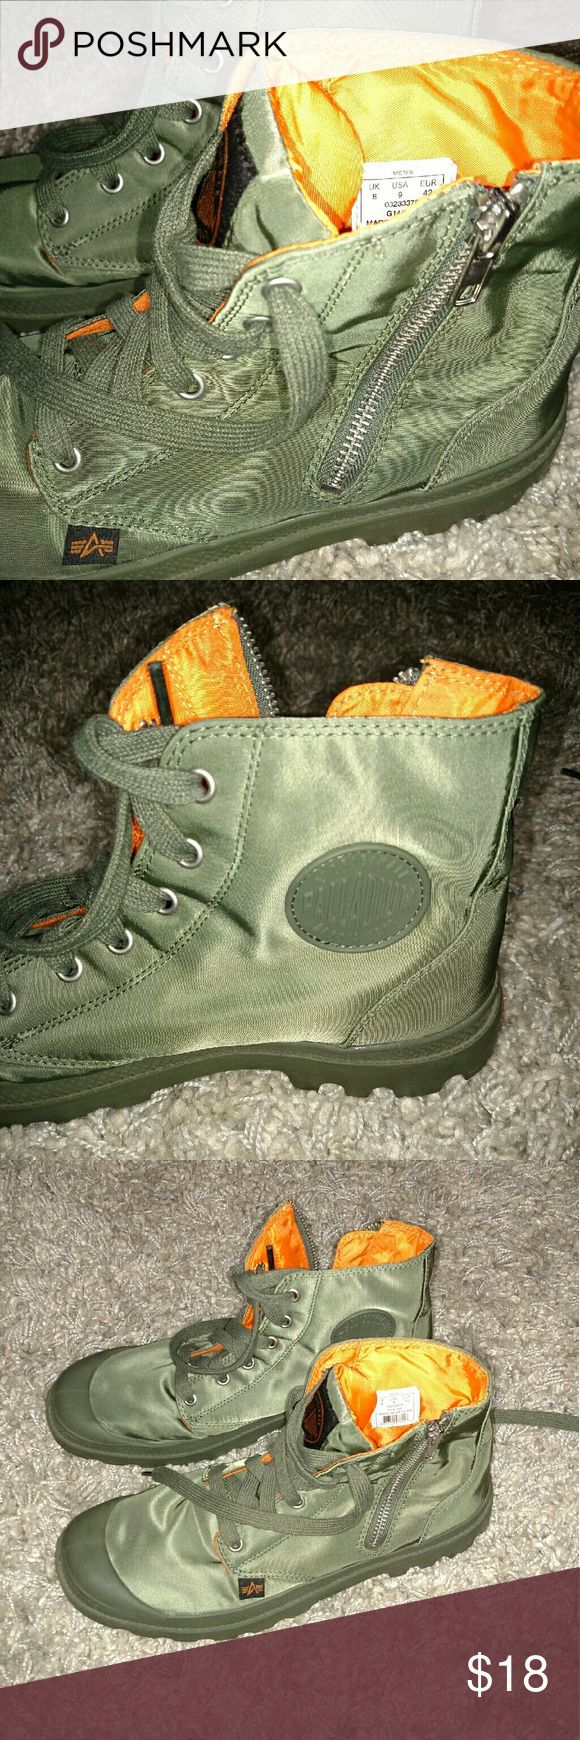 Palladium Men boots Green Nylon Palladium High zip boots. Orange on the inside. Side zipper. Worn two times, like new. Palladium Shoes Boots